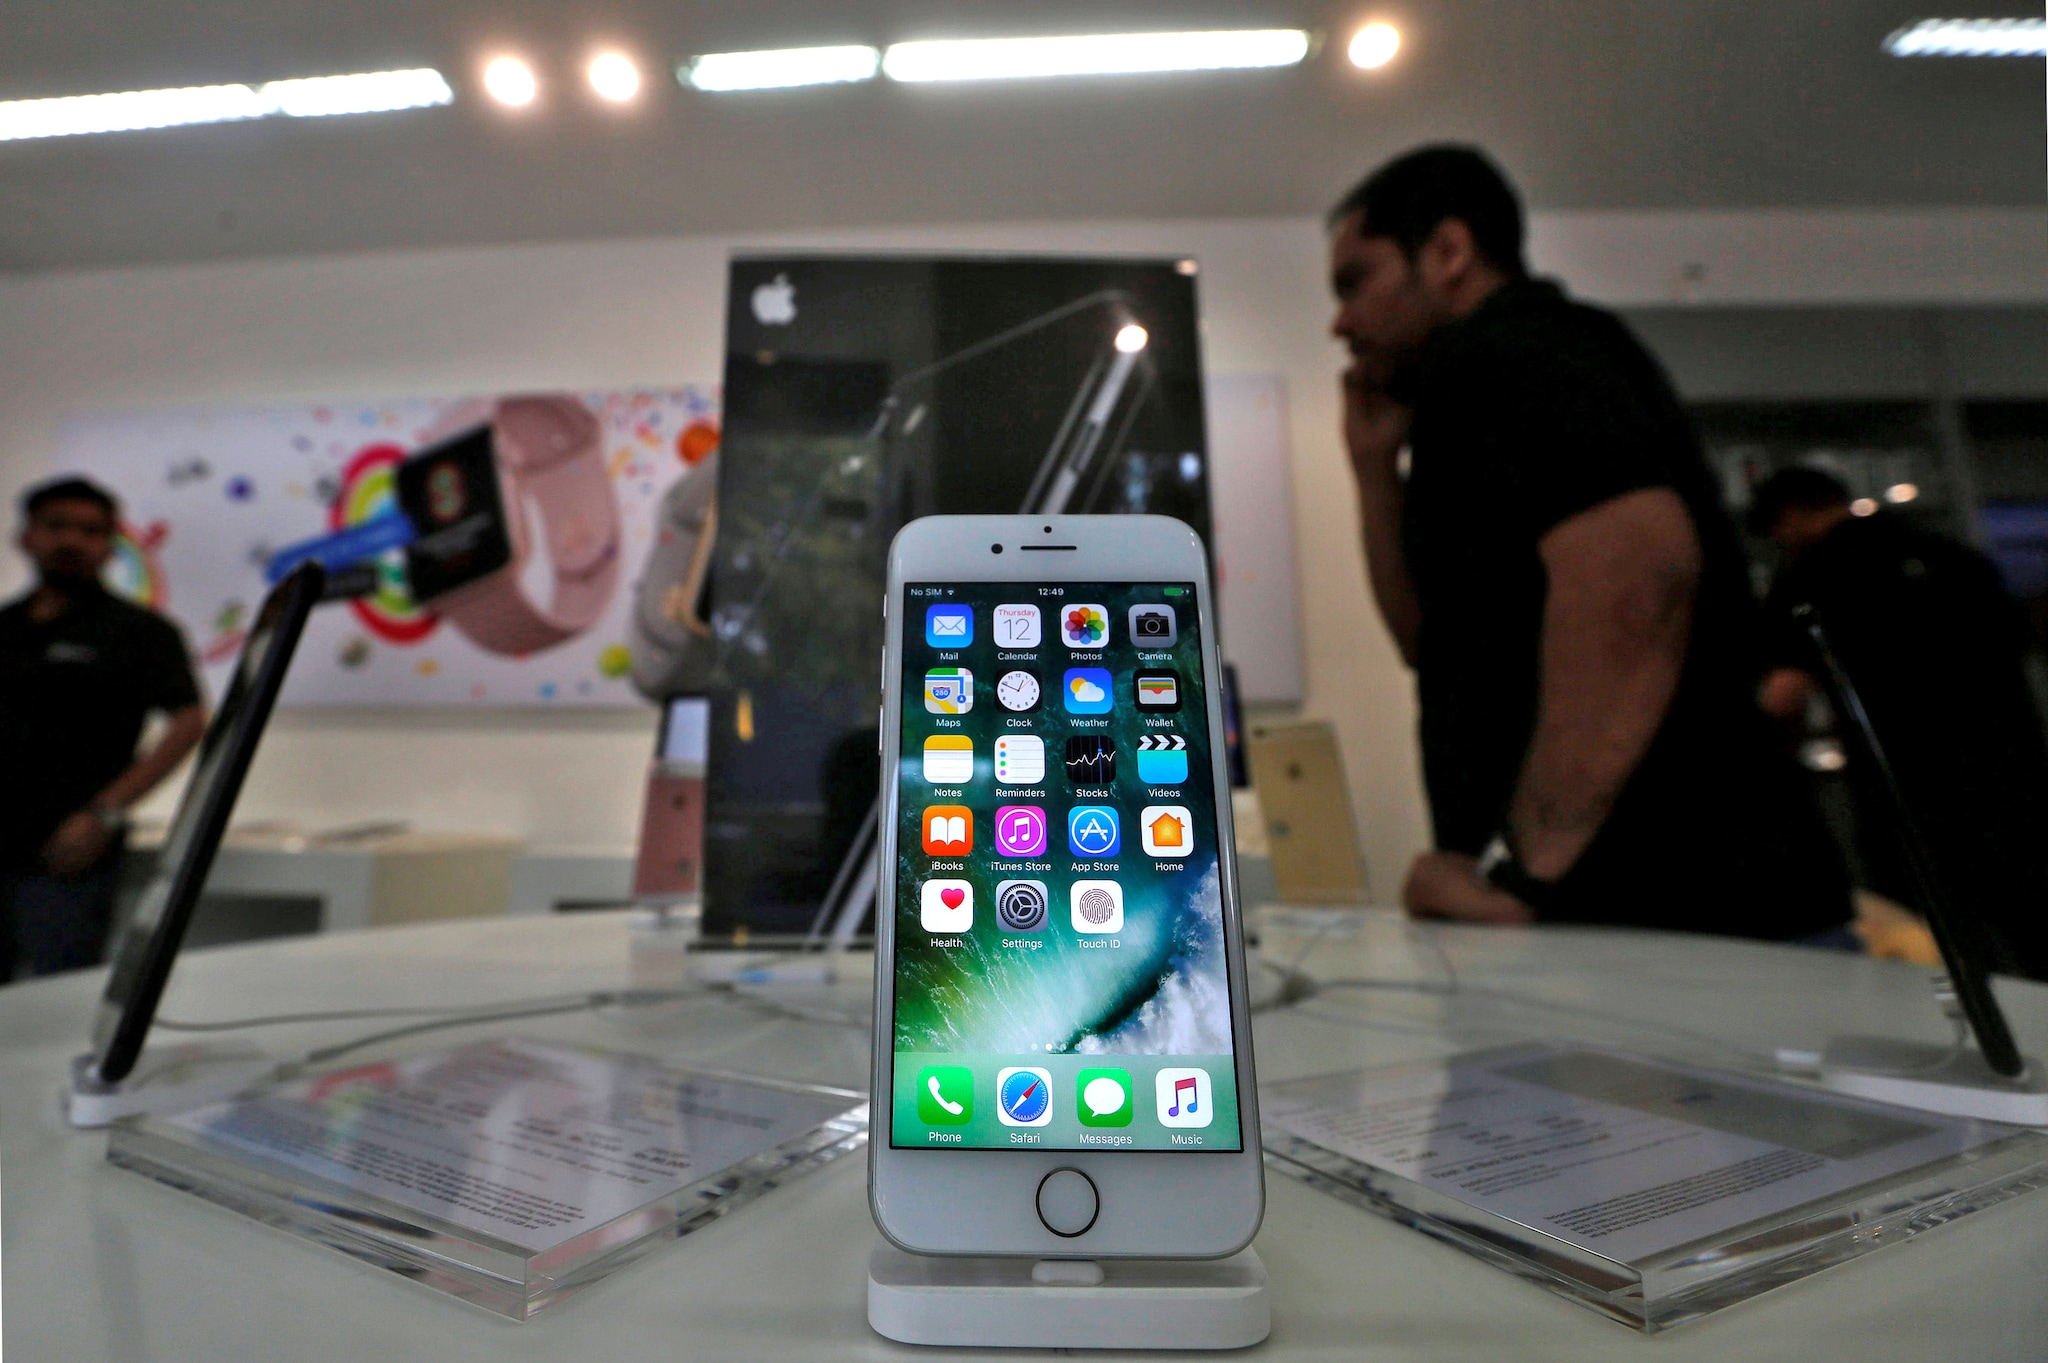 Apple iPhone 7- Apple' s iPhone 7 runs iOS 12, is water-resistant and houses a 12MP camera, Retina HD display, great battery life and stereo speakers. The 32GB iPhone 7 costs Rs 39,900.